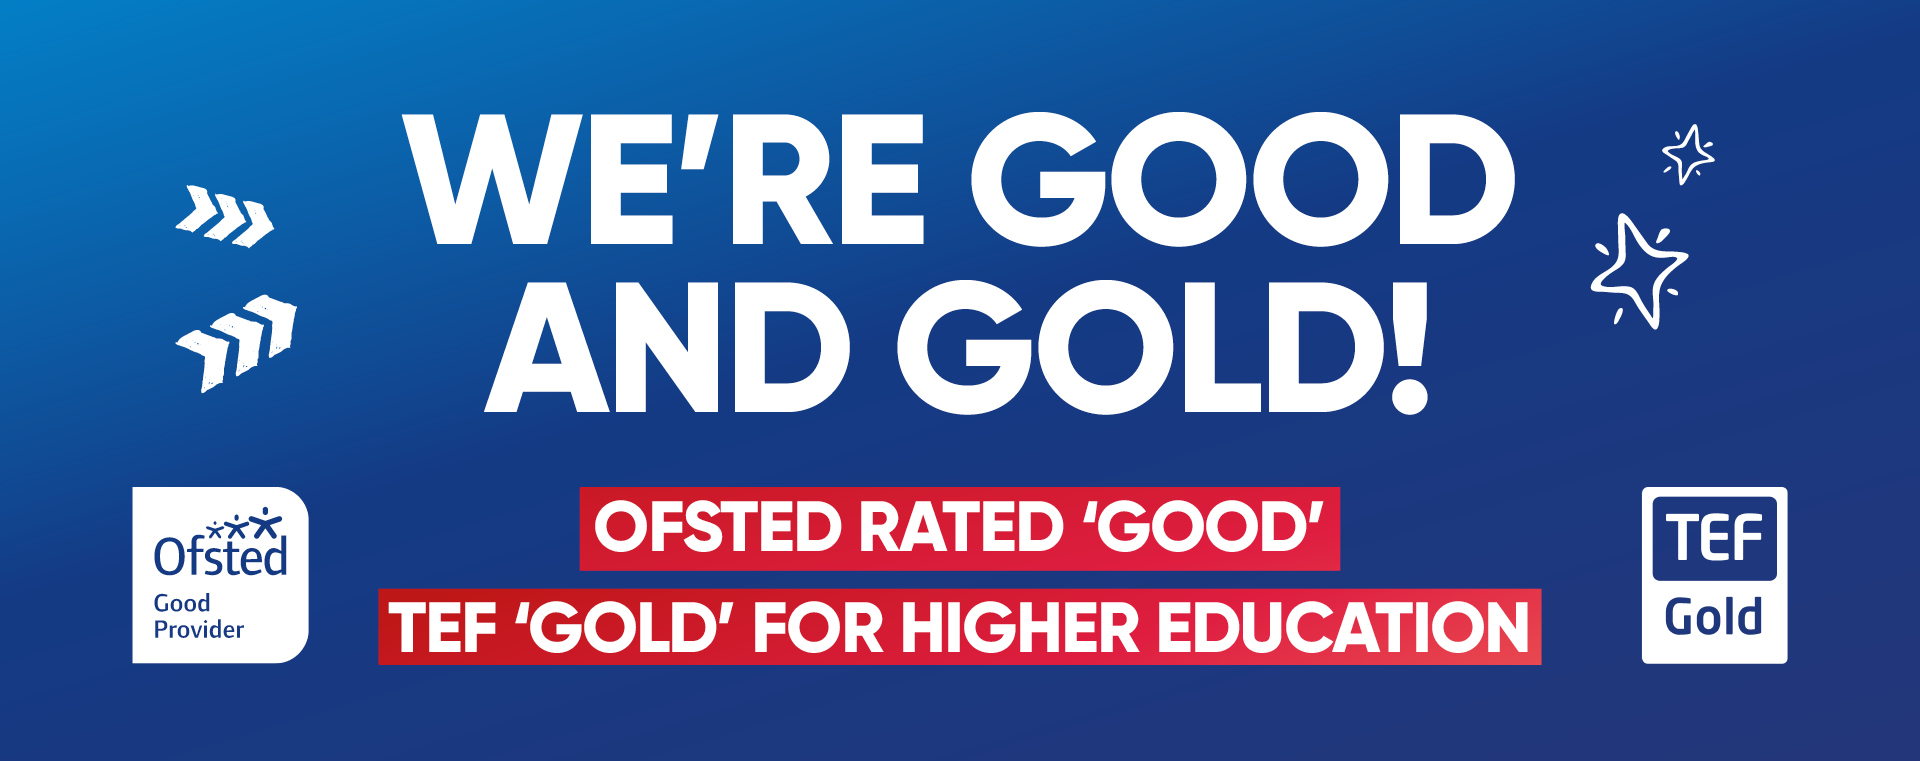 Middlesbrough College Ofsted Good TEF Gold